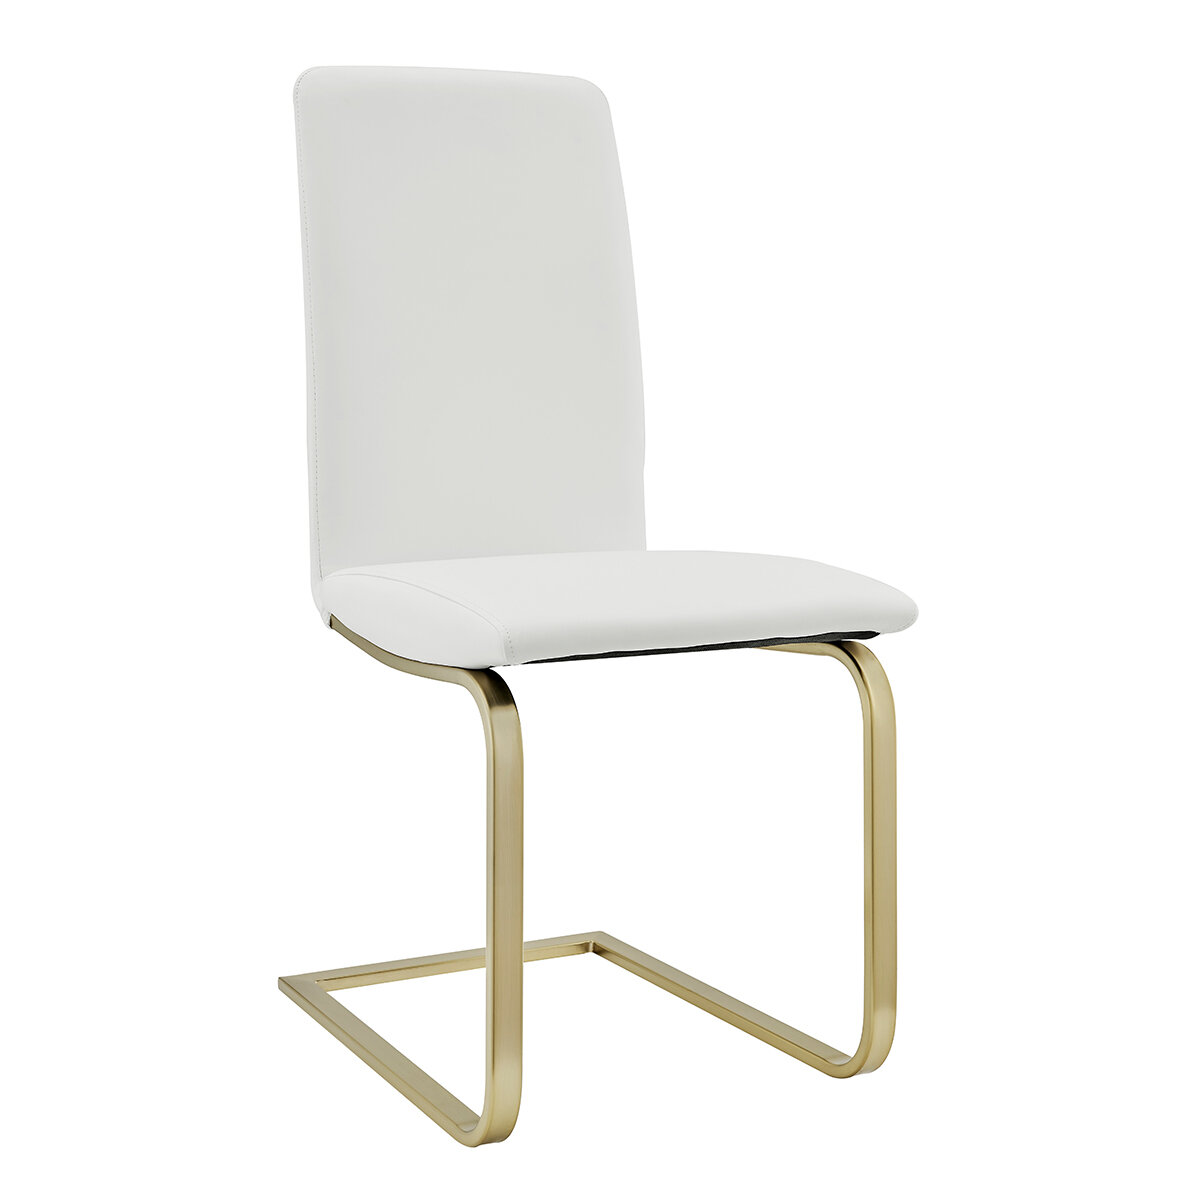 Faux Leather White Kitchen Dining Chairs You Ll Love In 2021 Wayfair